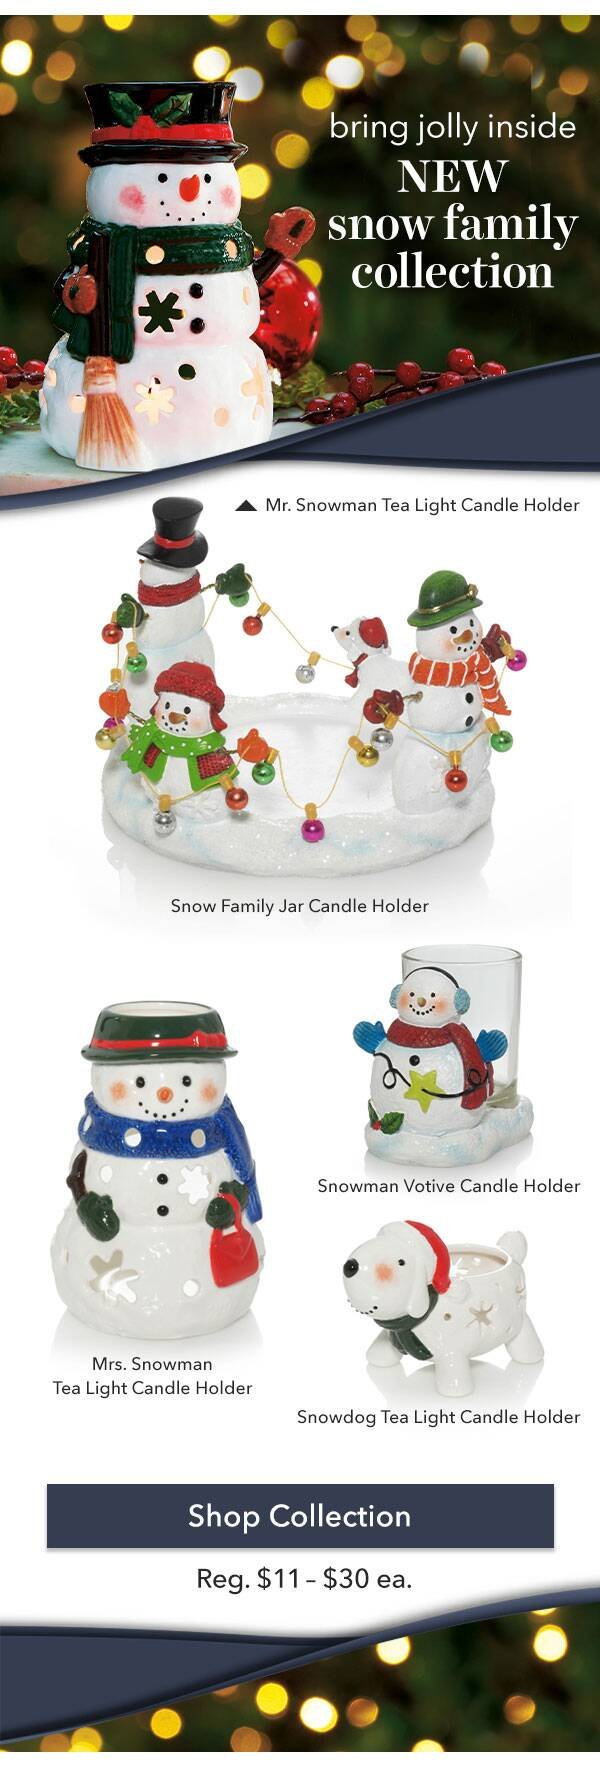 Snow Family Collection